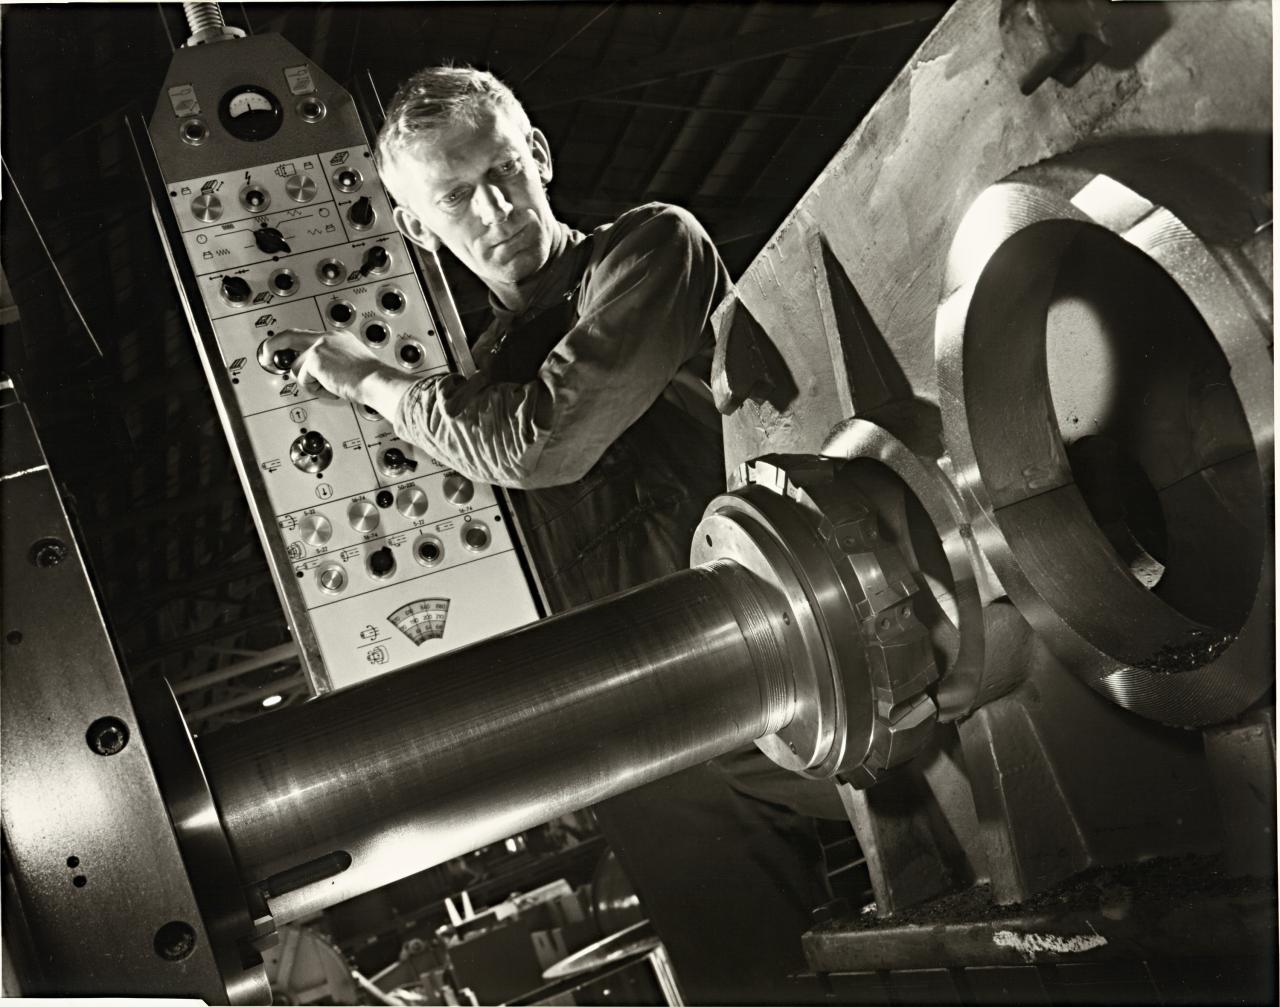 Lathe operator at Marweight, Burnley, Melbourne